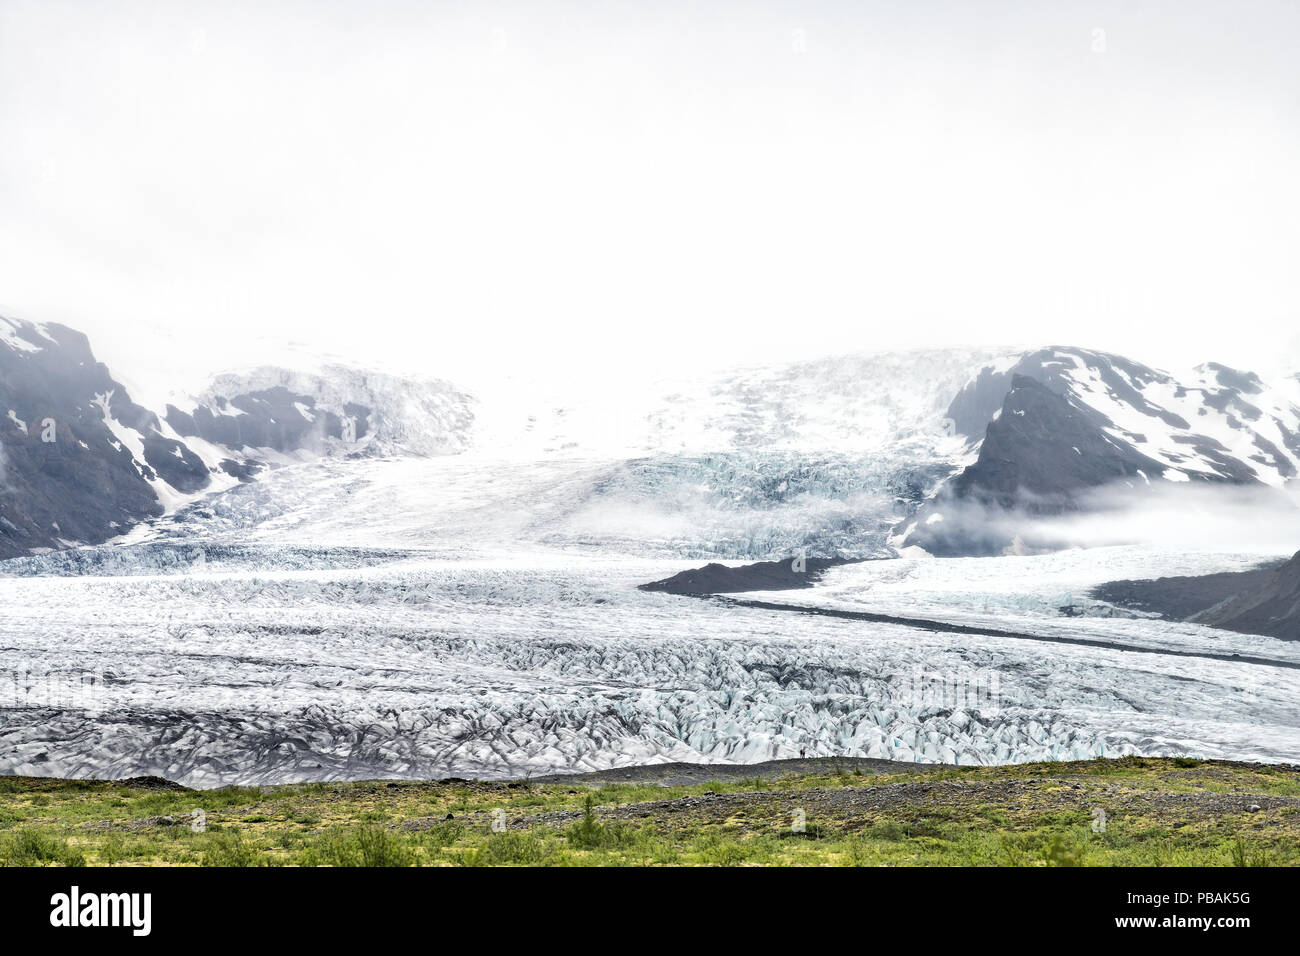 View on Skaftafell National Park, Iceland glacier ice tongues with people in distance, rocks, moss, fog, clouds, cliffs, mountains - Stock Image